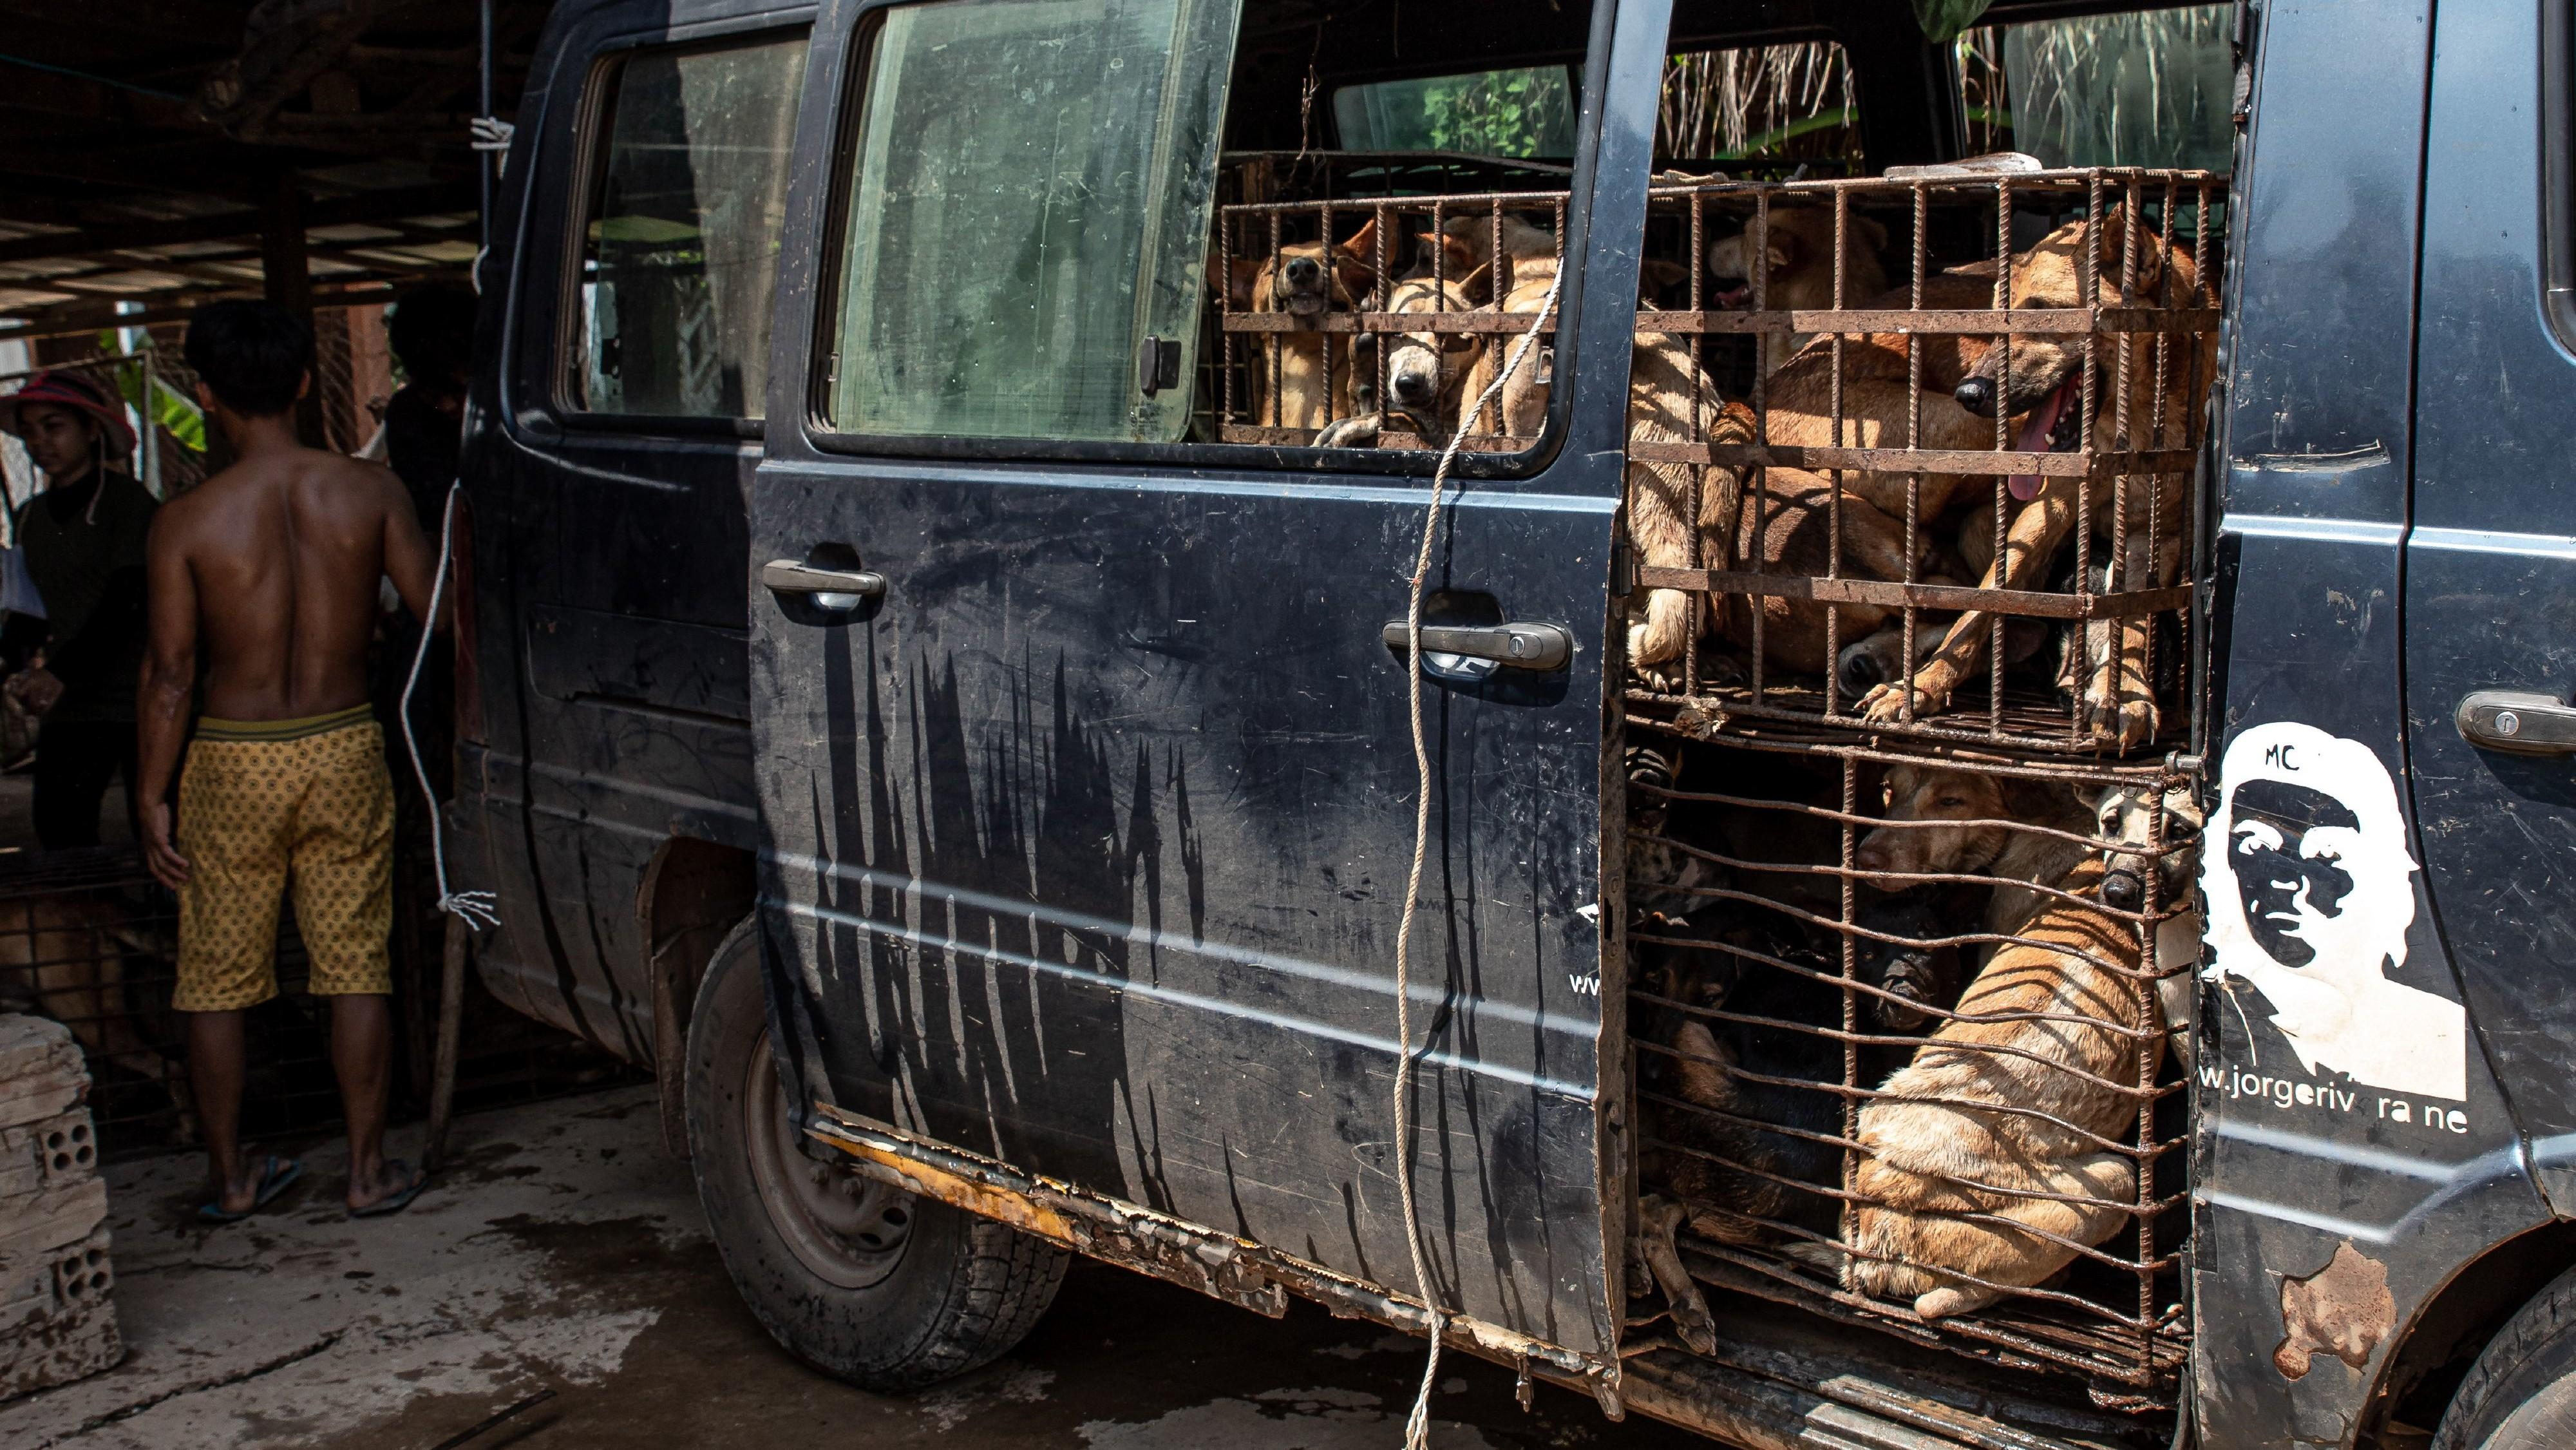 Dogs in cages in a van in Cambodia